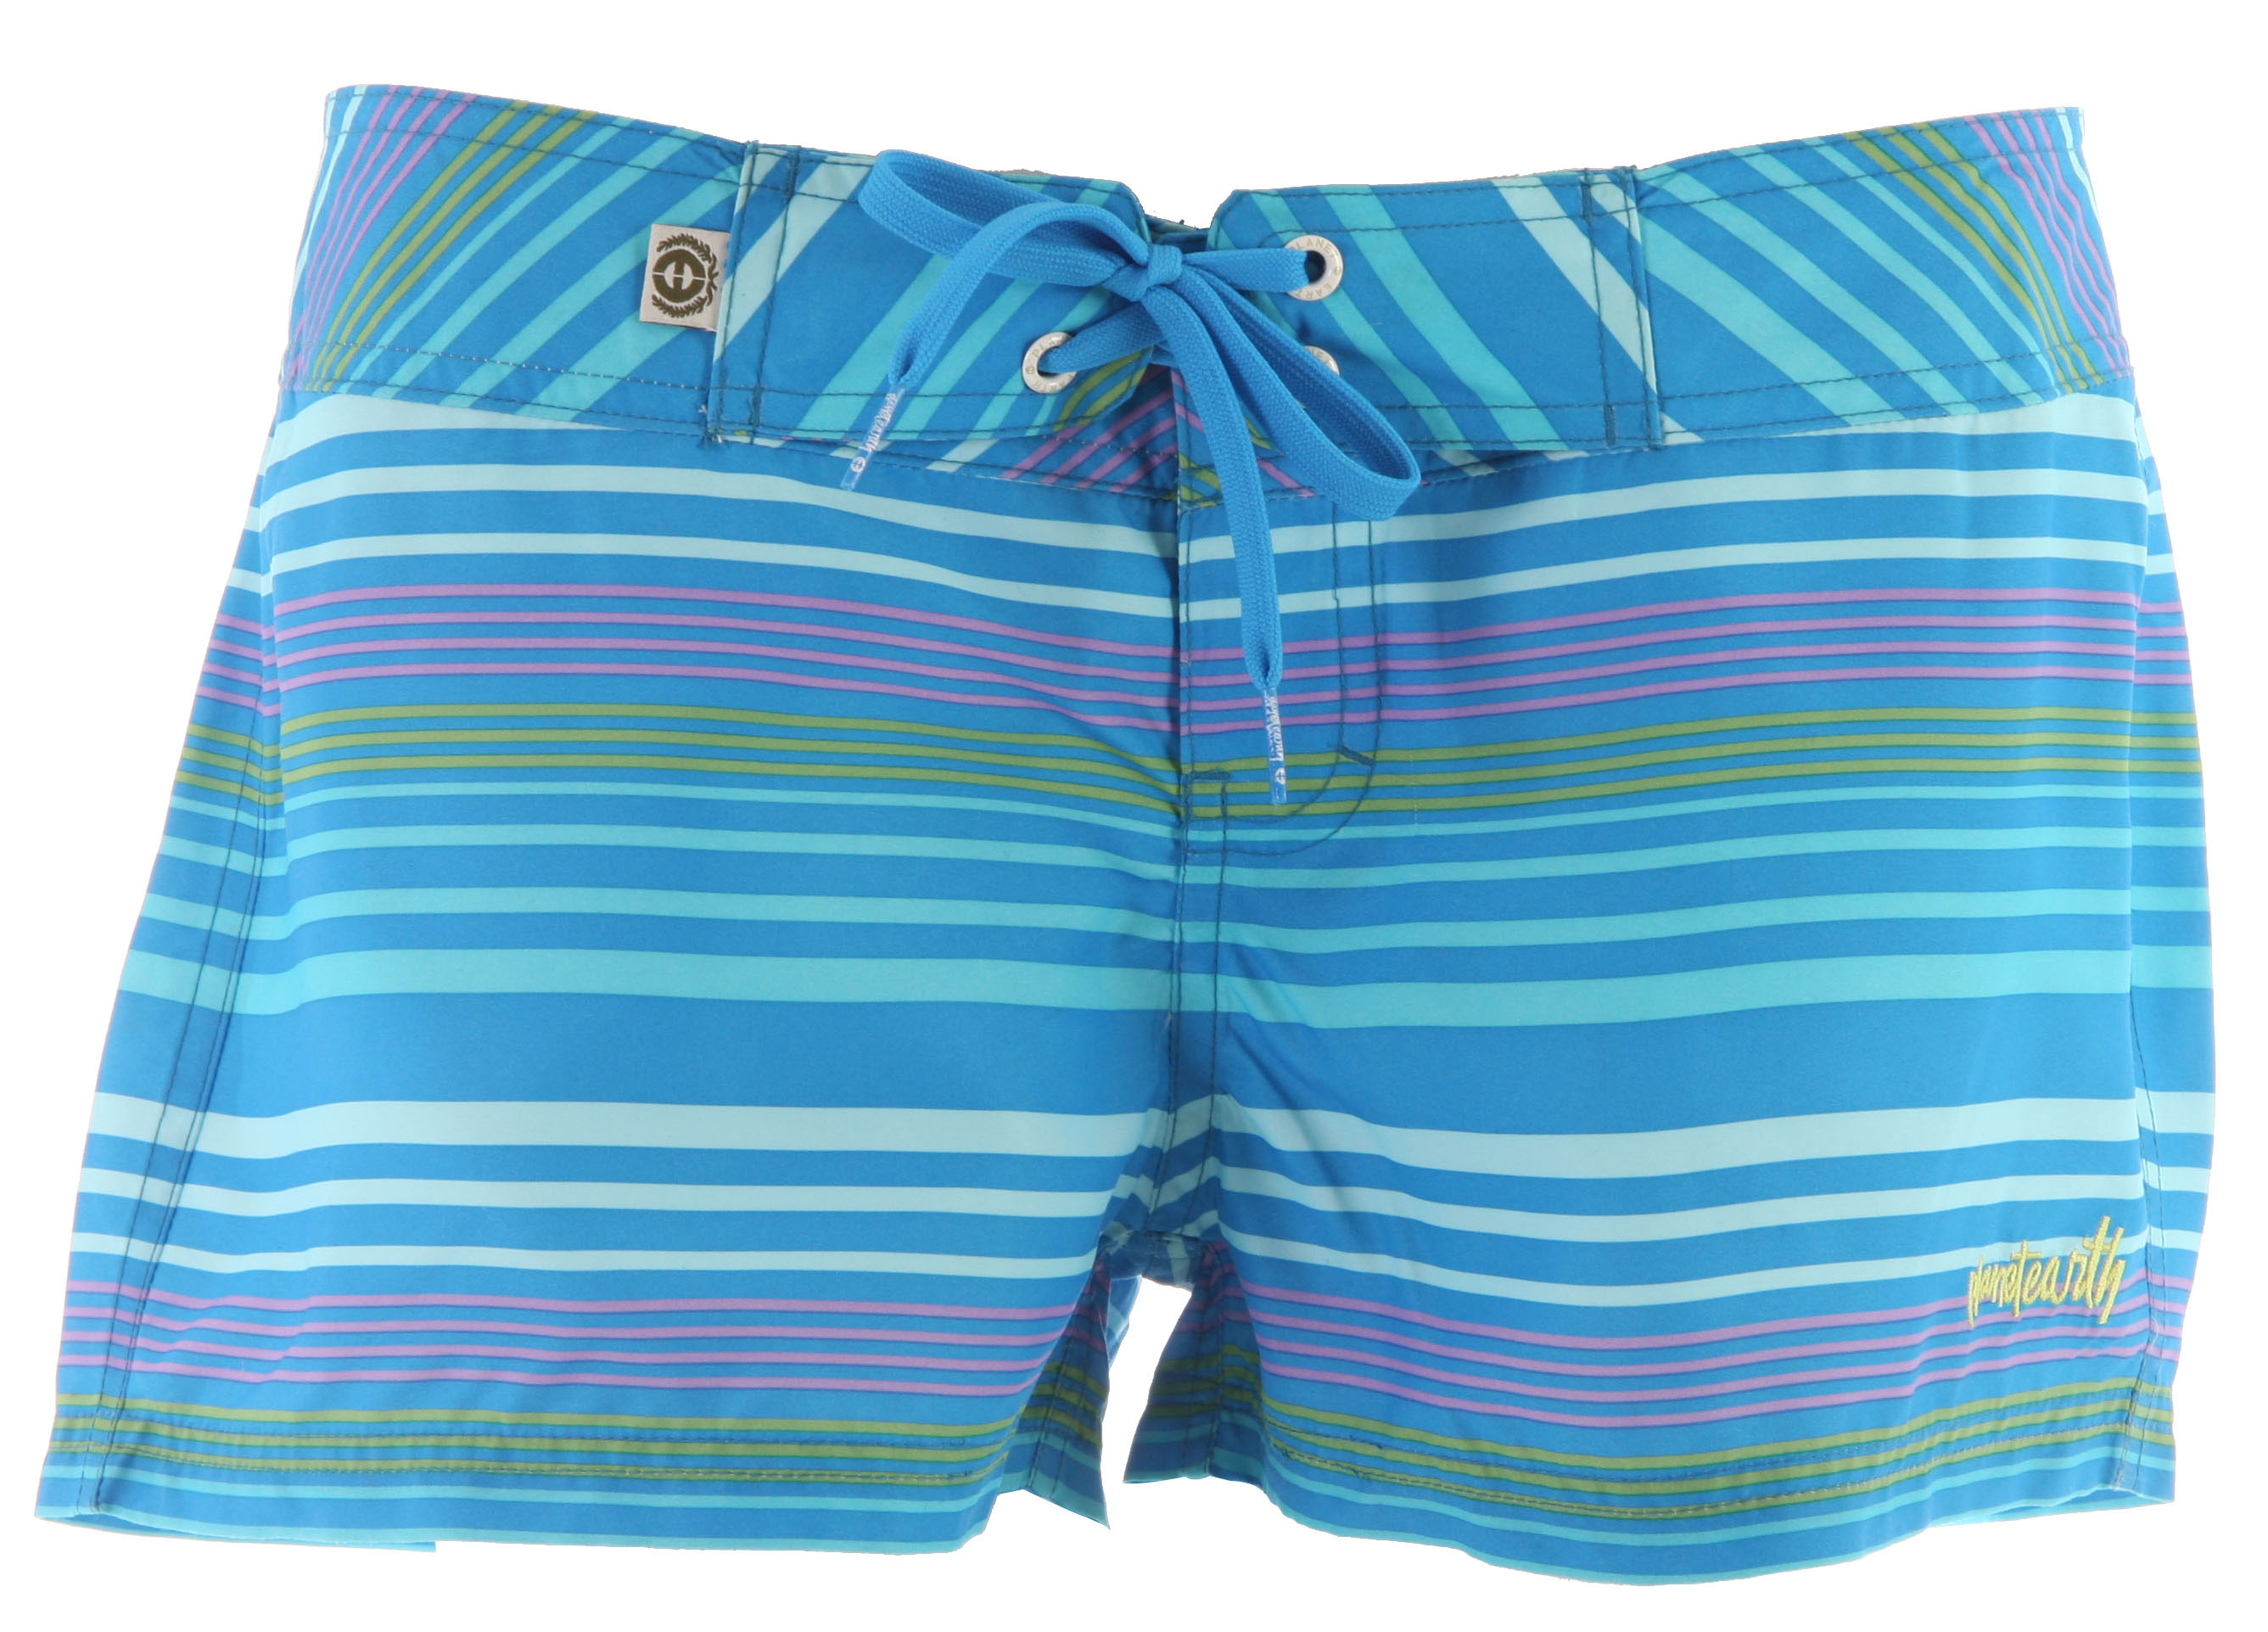 Surf Key Features of Planet Earth Kimmel Boardshorts:100% Recycled Polyester PET, 2.5'' Inseam - $19.99